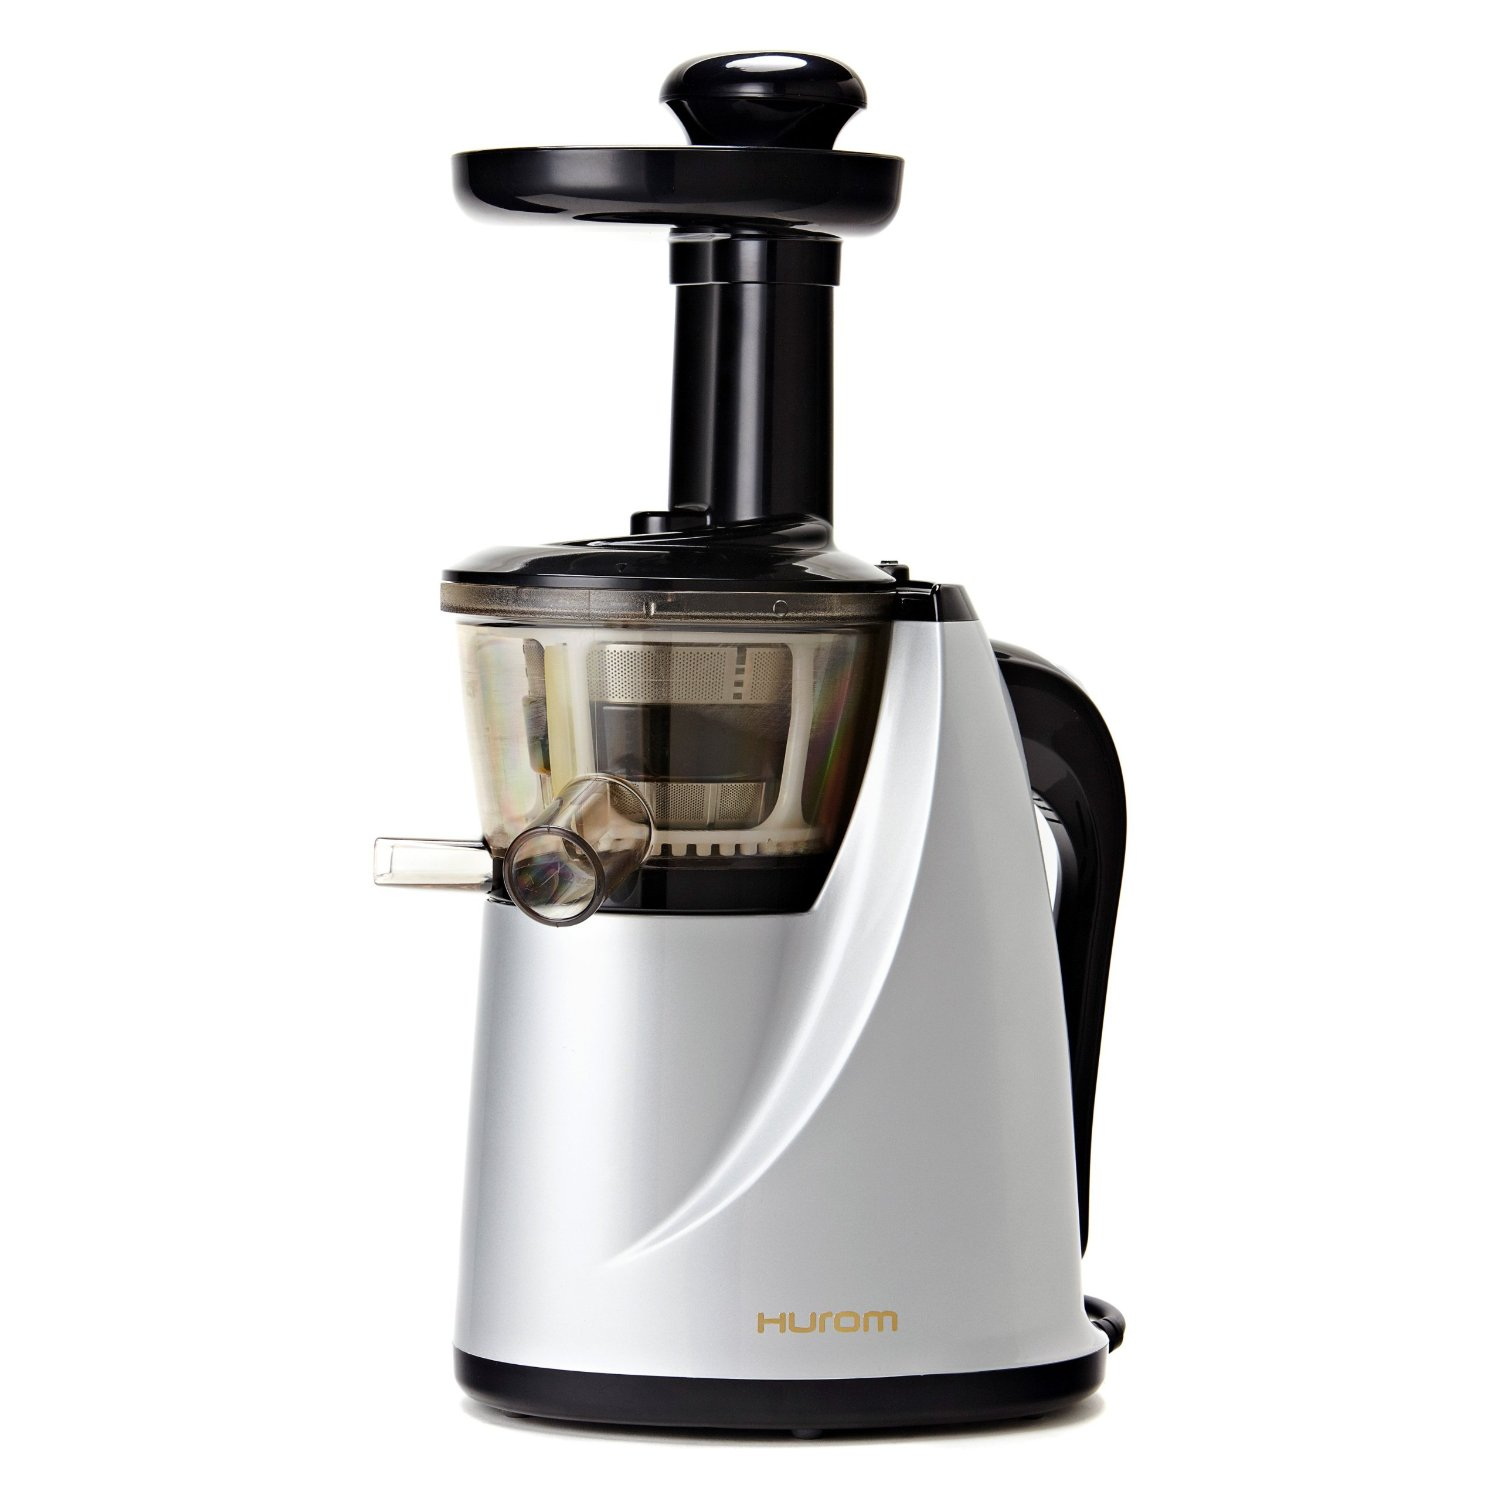 Hurom Slow Masticating Juicer : Hurom HU-100 Masticating Slow Juicer Review - Best Cold Press Juicers